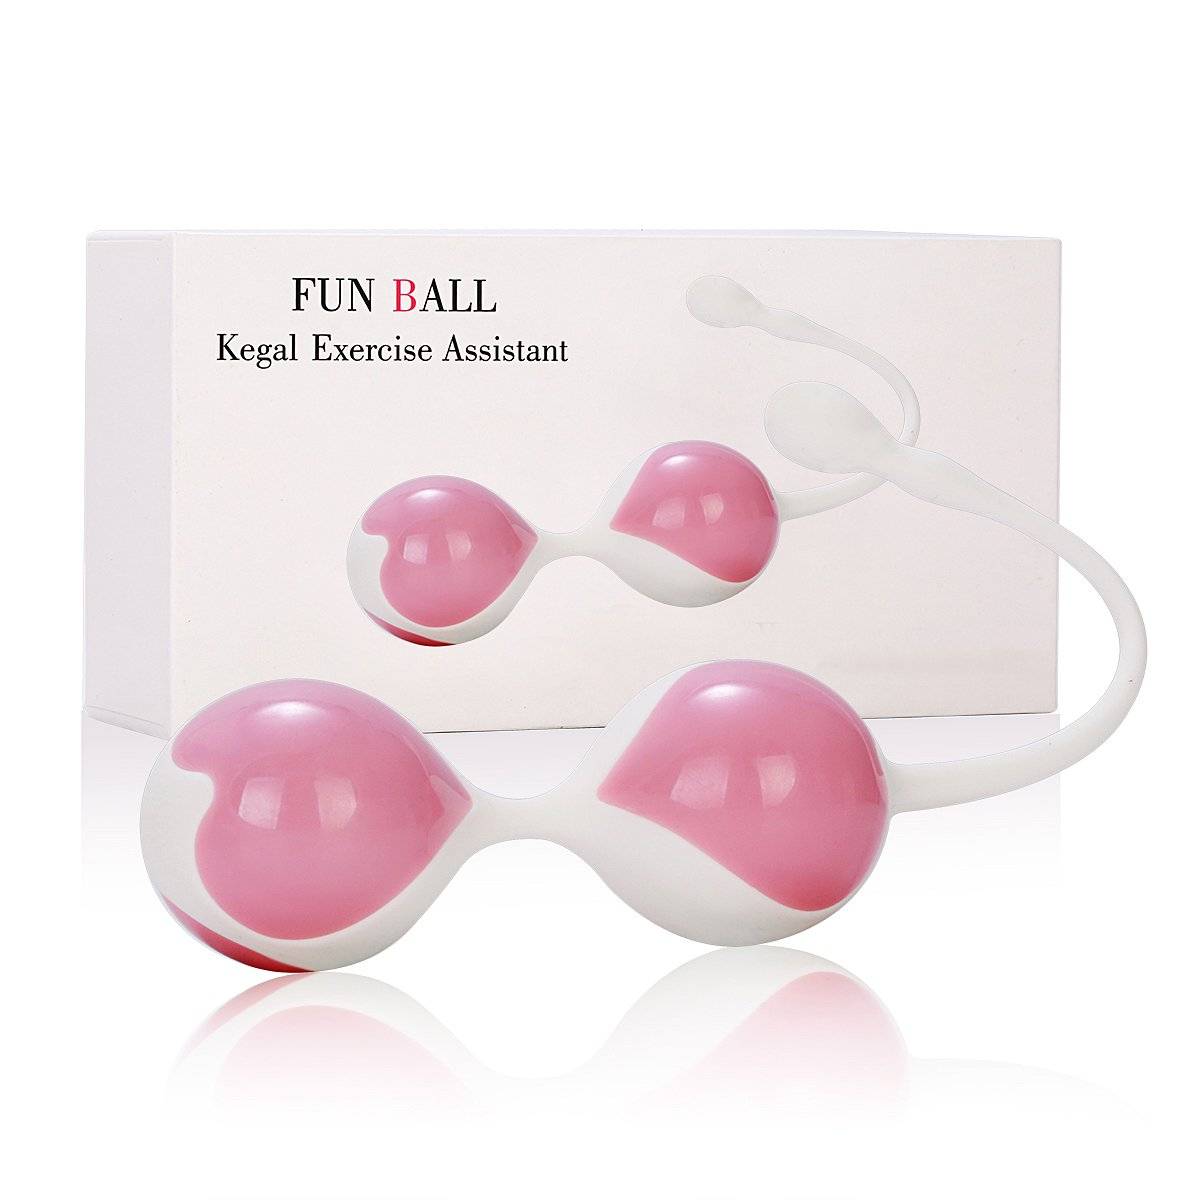 Wote Kegel Ball Exercise Kit Medical silicone Waterproof Bladder control device, Pelvic Exercise Kit for Female